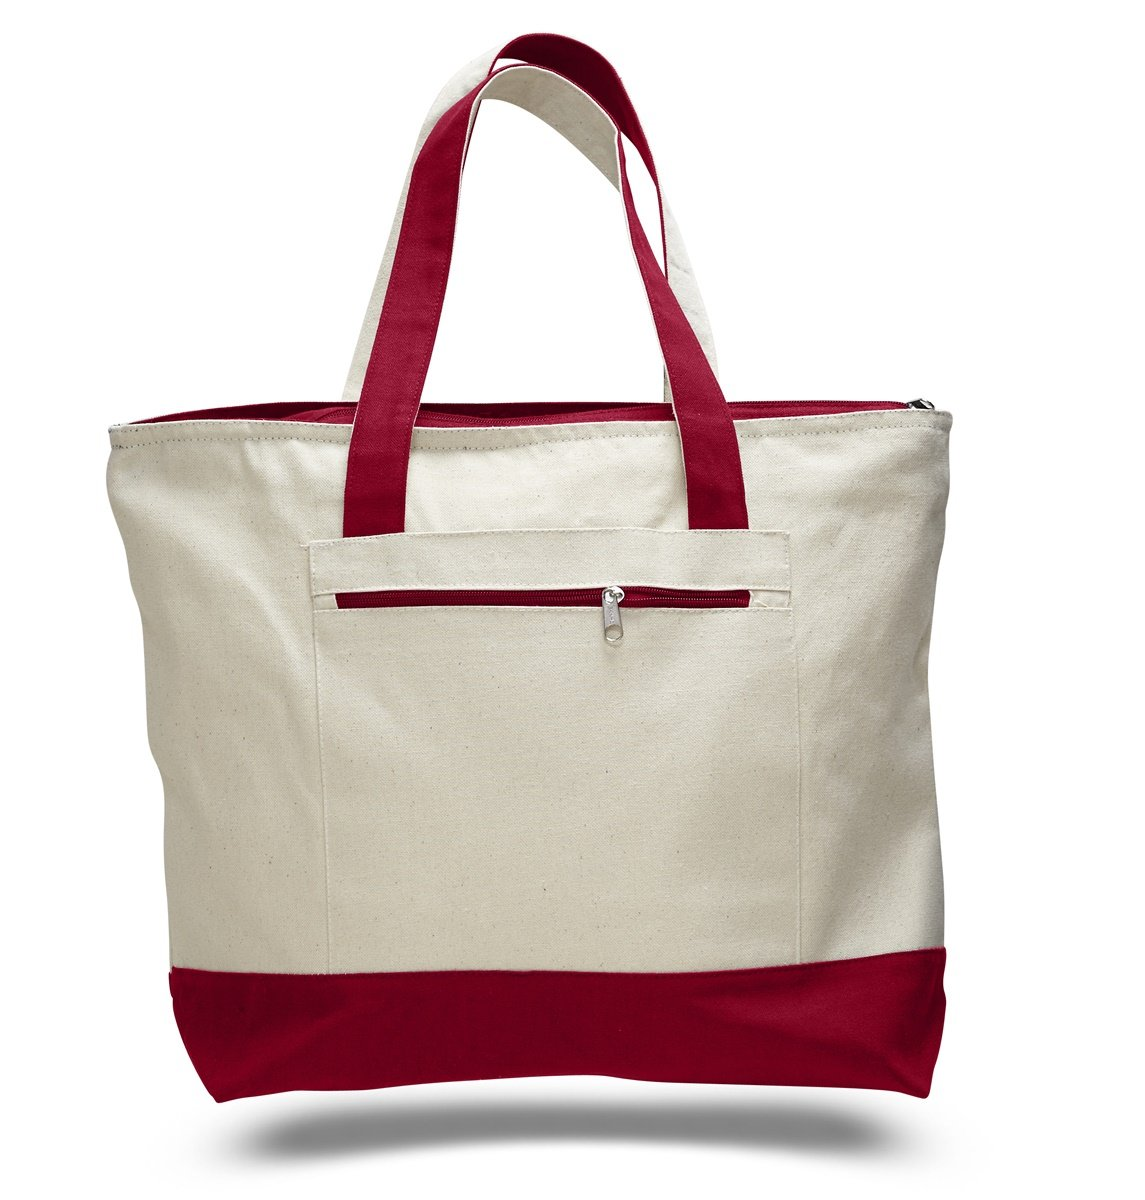 (Set of 1, Red) - Reusable Zipper Shopping Tote Bag Heavy Canvas Two Tone, Red, Set of 1 B01MR4FTGC レッド Set of 1